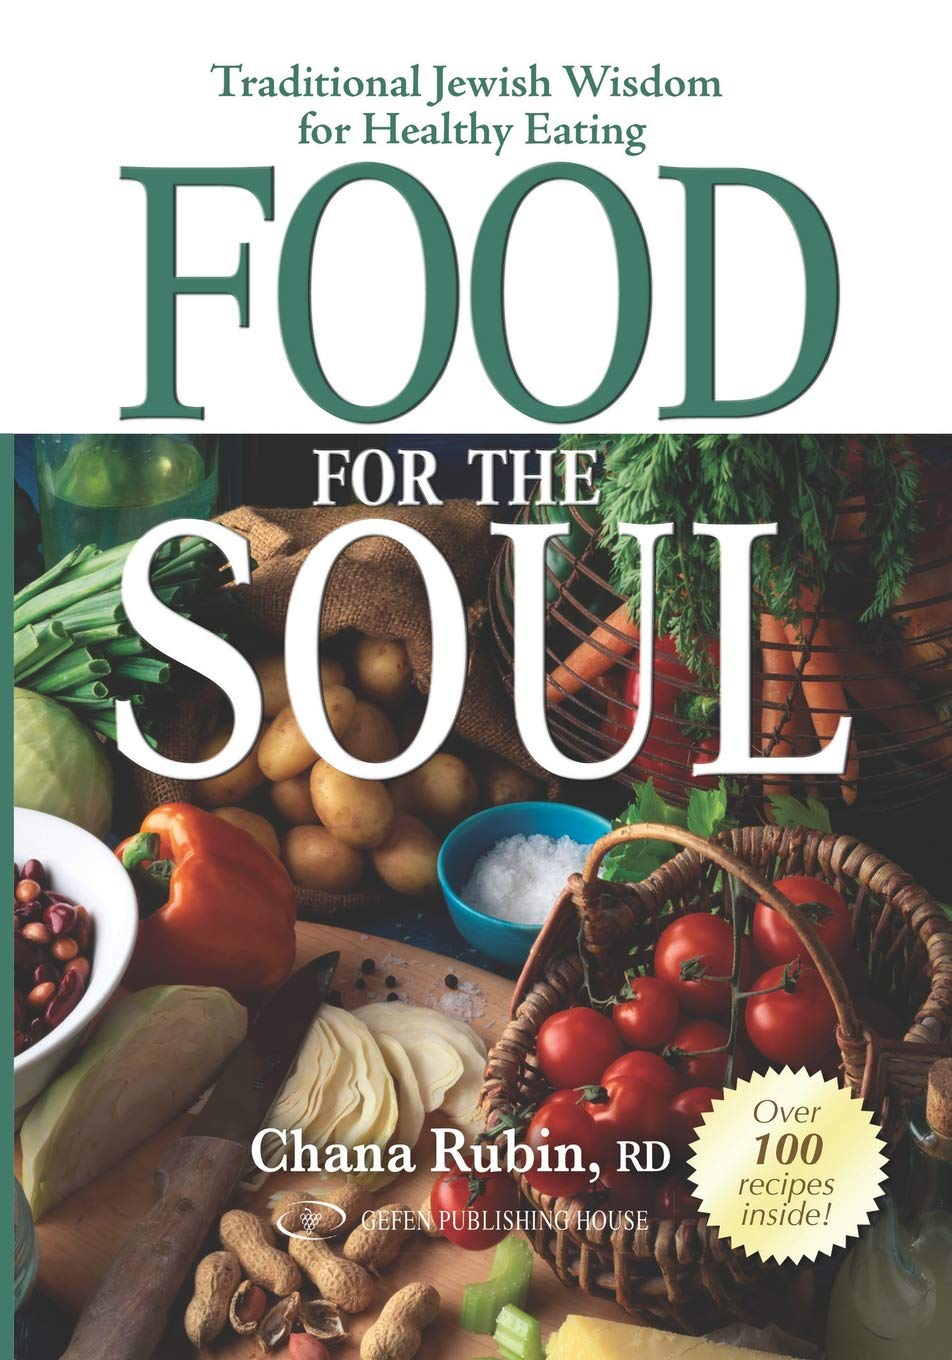 Food for the Soul: Traditional Jewish Wisdom for Healthy